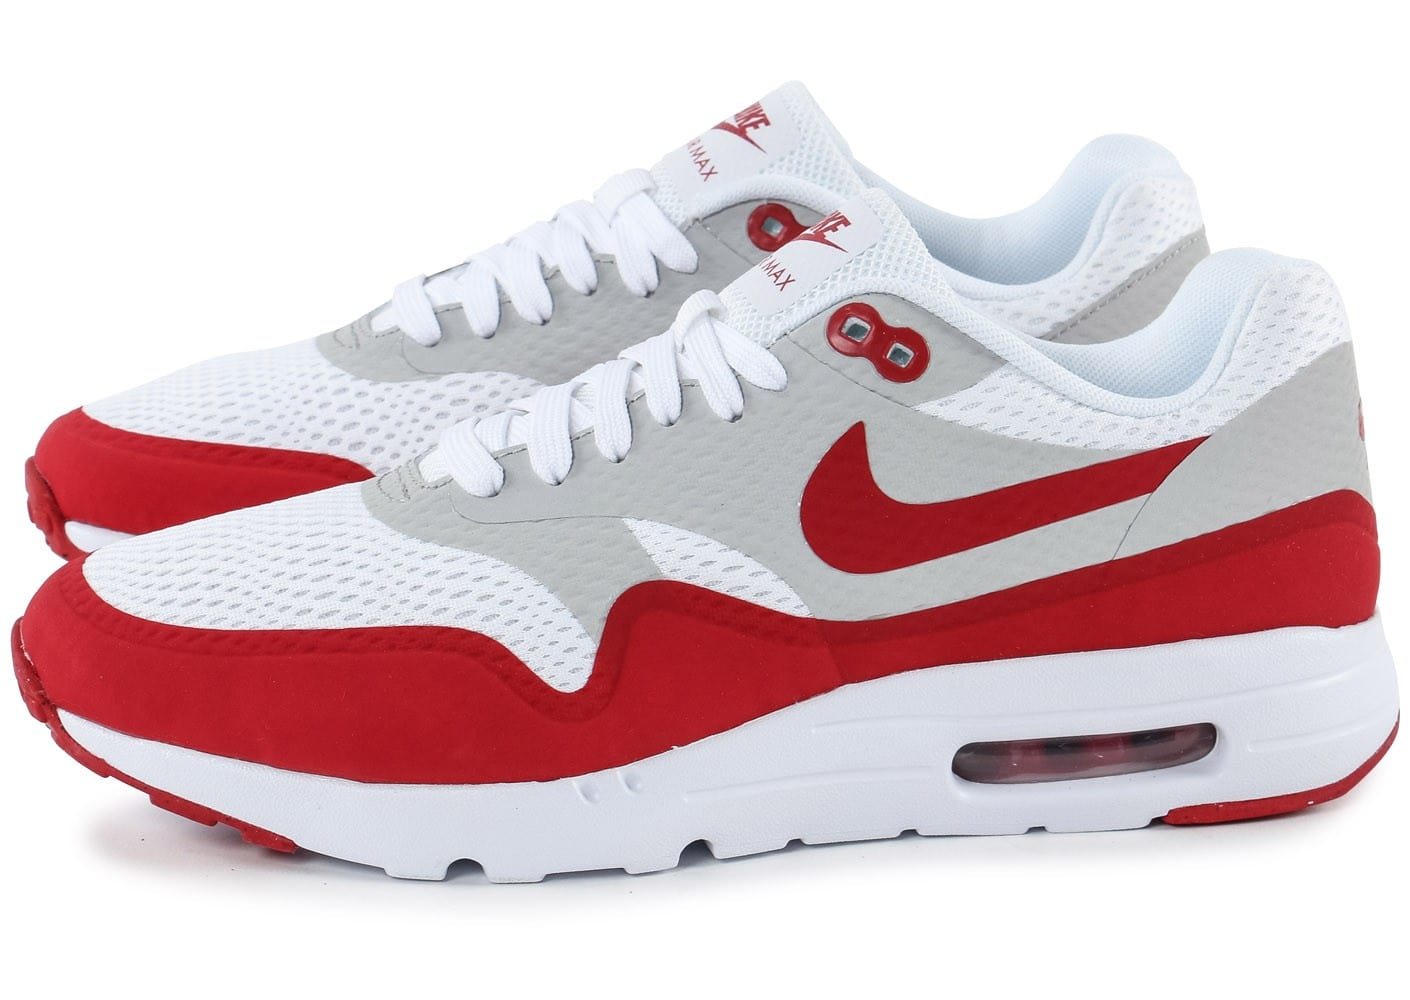 Nike Air Max 1 Ultra Essential blanc rouge Chaussures